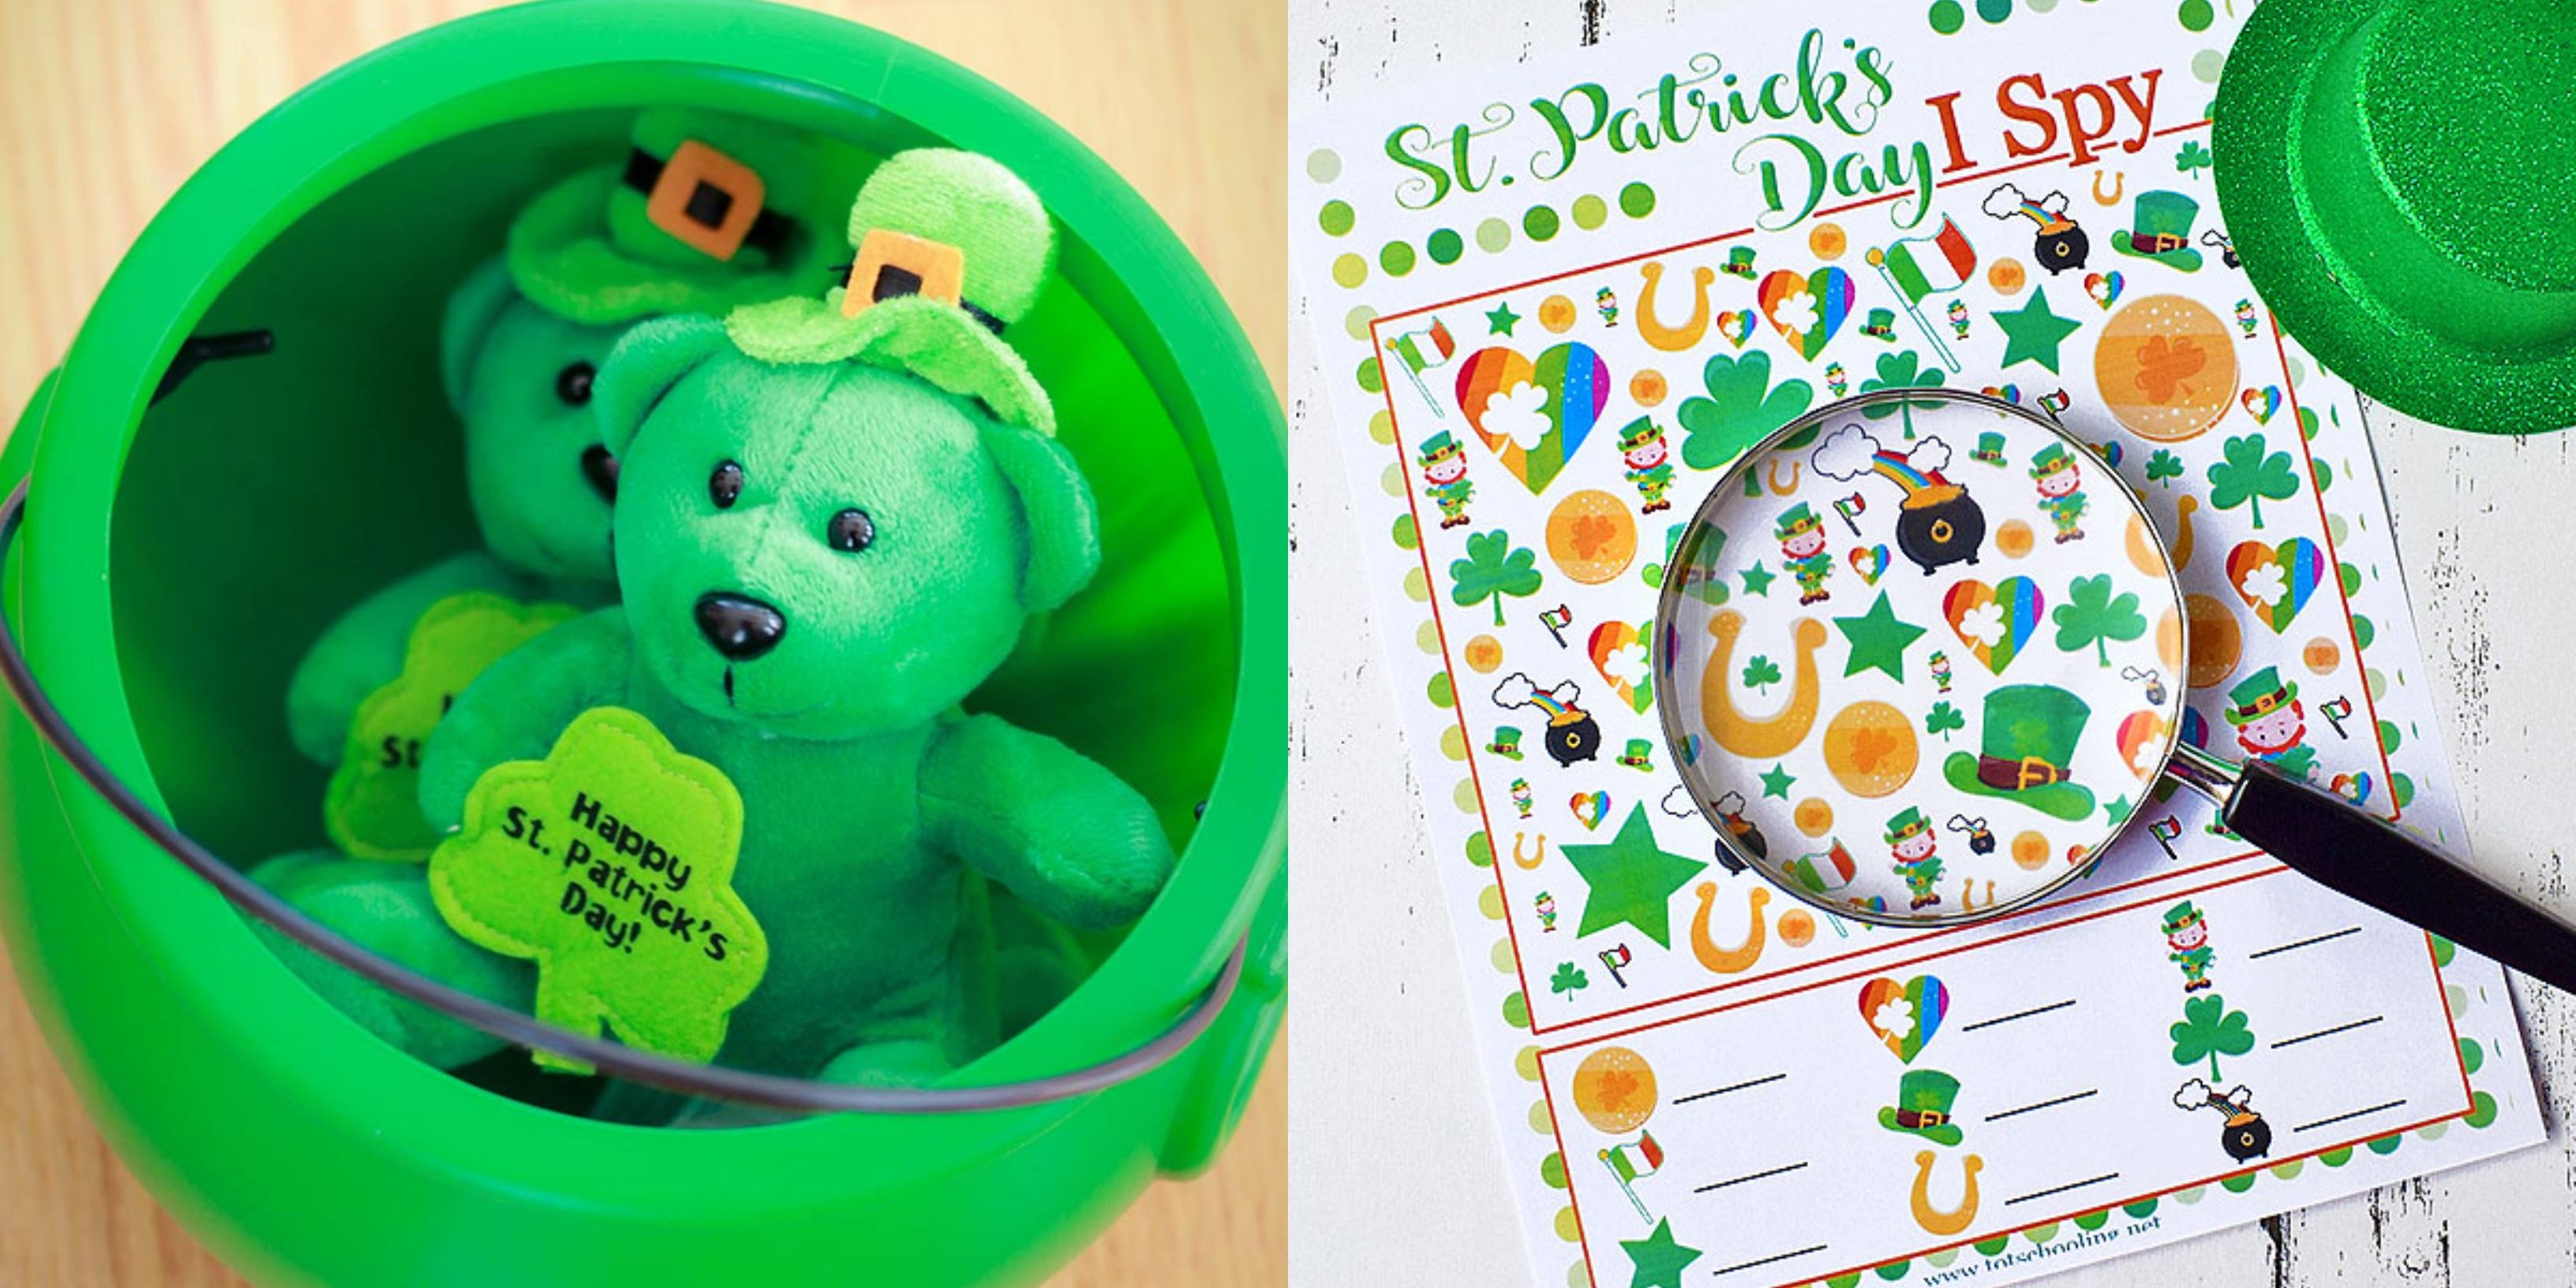 Try Your Luck With These St. Patrick's Day Games